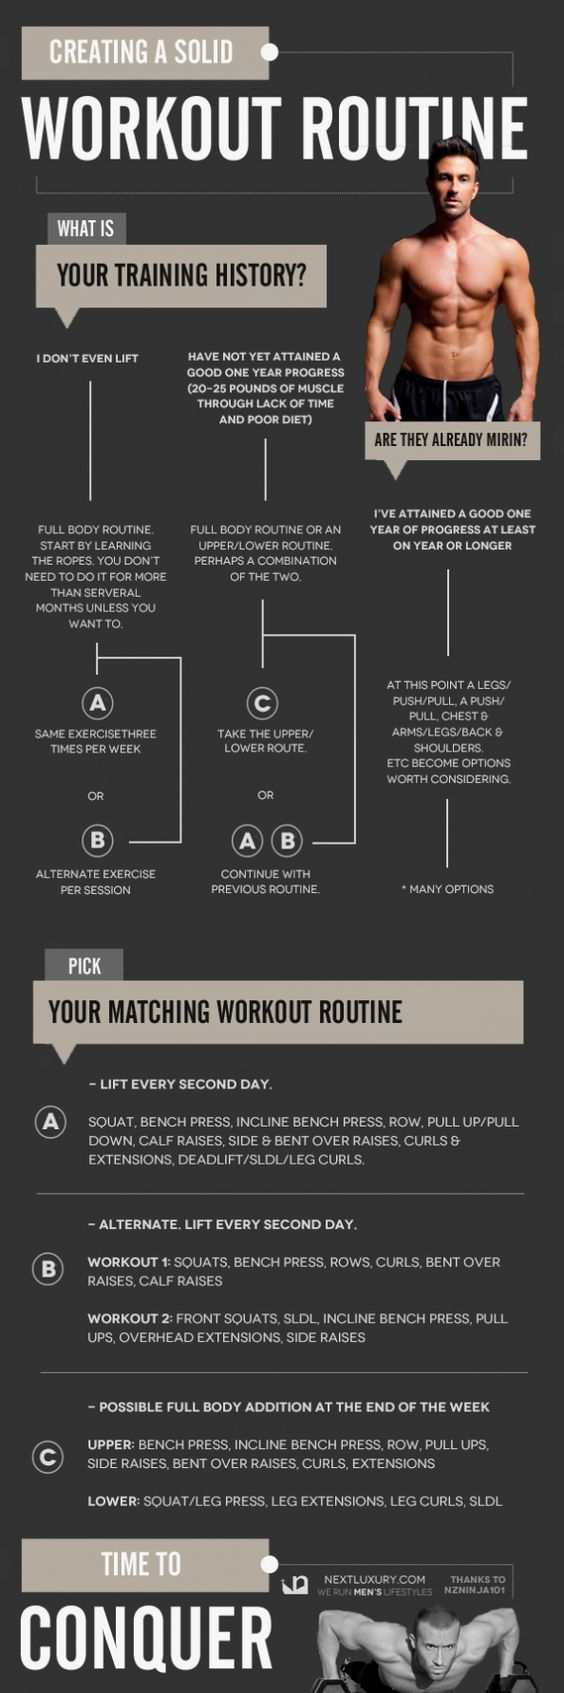 Creating A Solid Workout Routine For Men Infographic Infografia Pinterest The Ojays